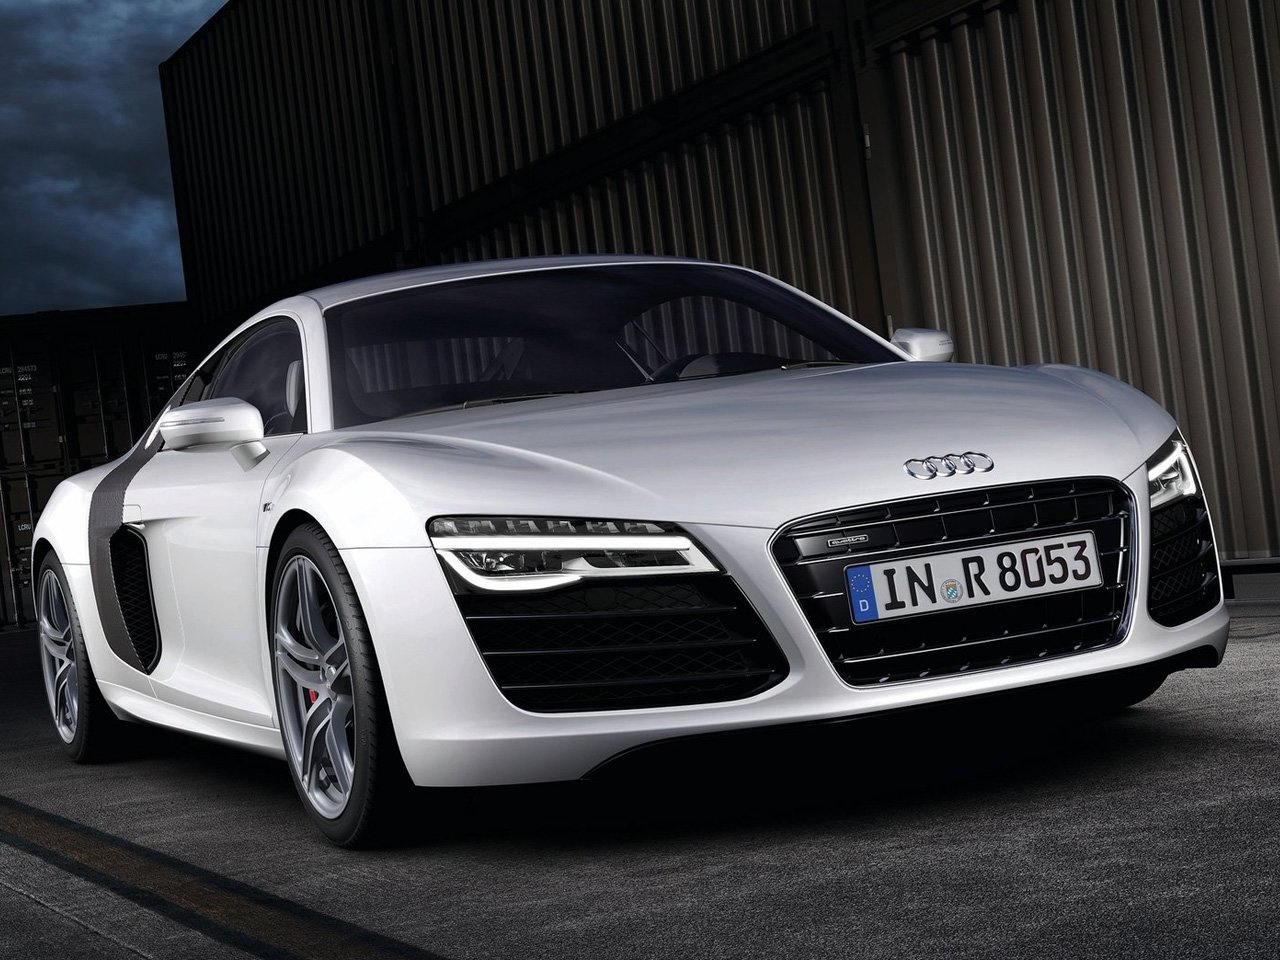 Latest 2013 Audi R8 V10 Auto Cars Concept Free Download